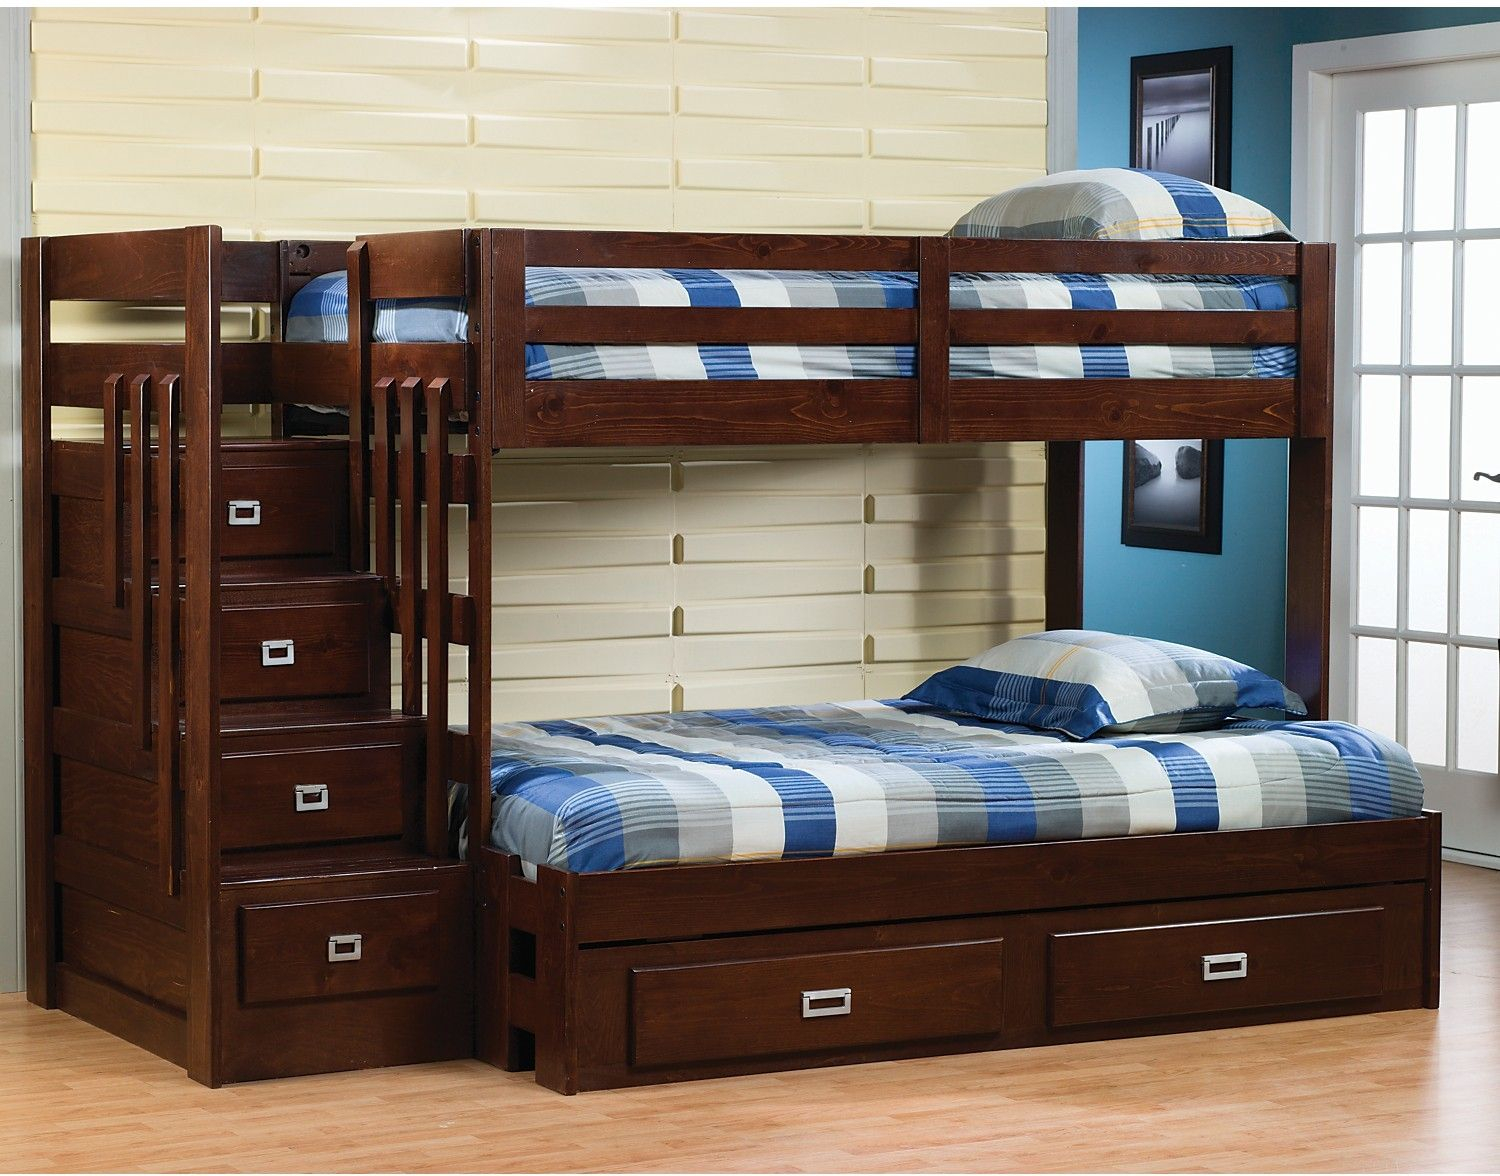 The Berkeley Twin Full Staircase Bunk Bed Is The Ideal